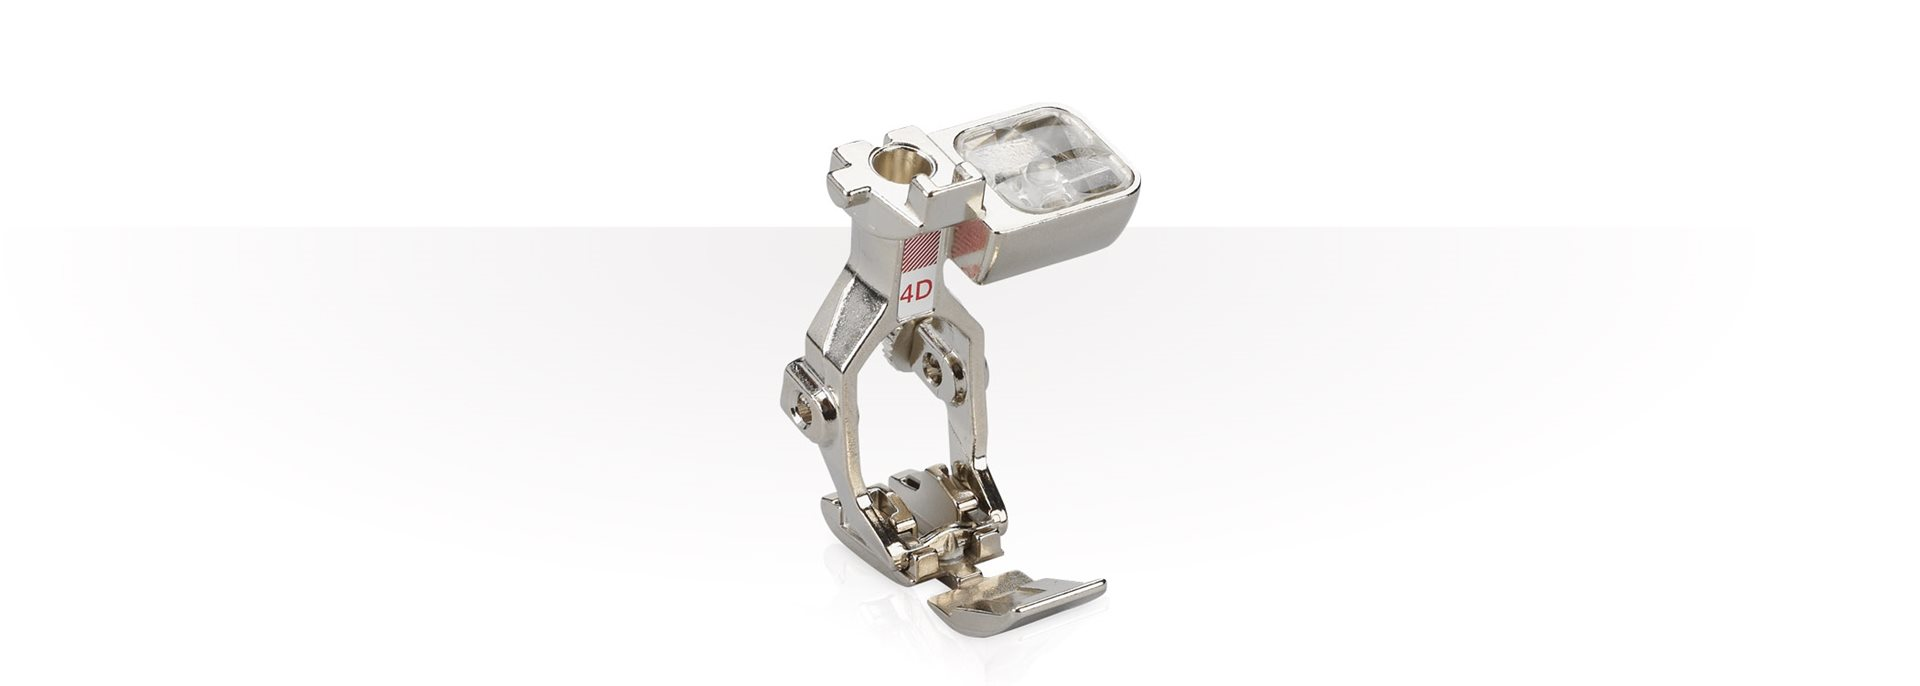 Bernina #4D Zipper Foot